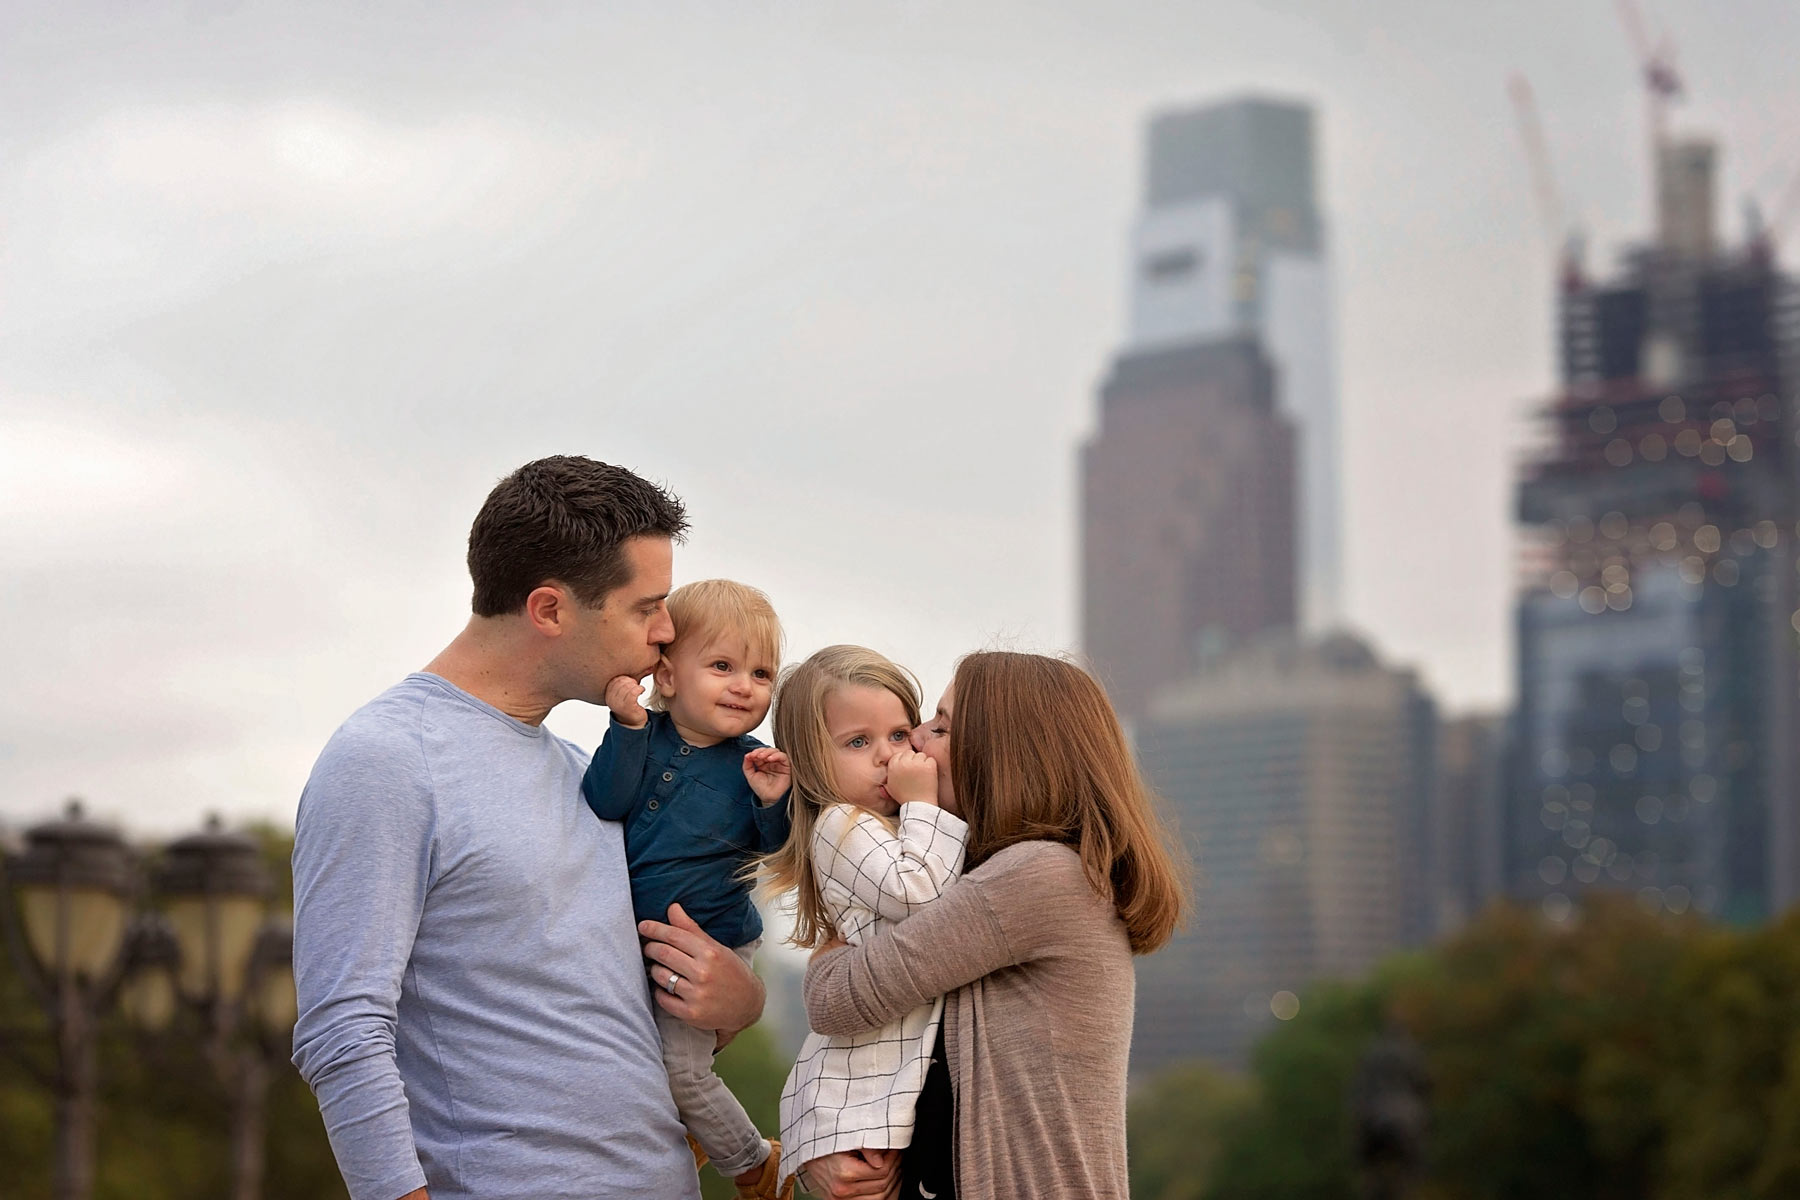 family of four on the steps of the philadelphia art museum with the skyline in the background